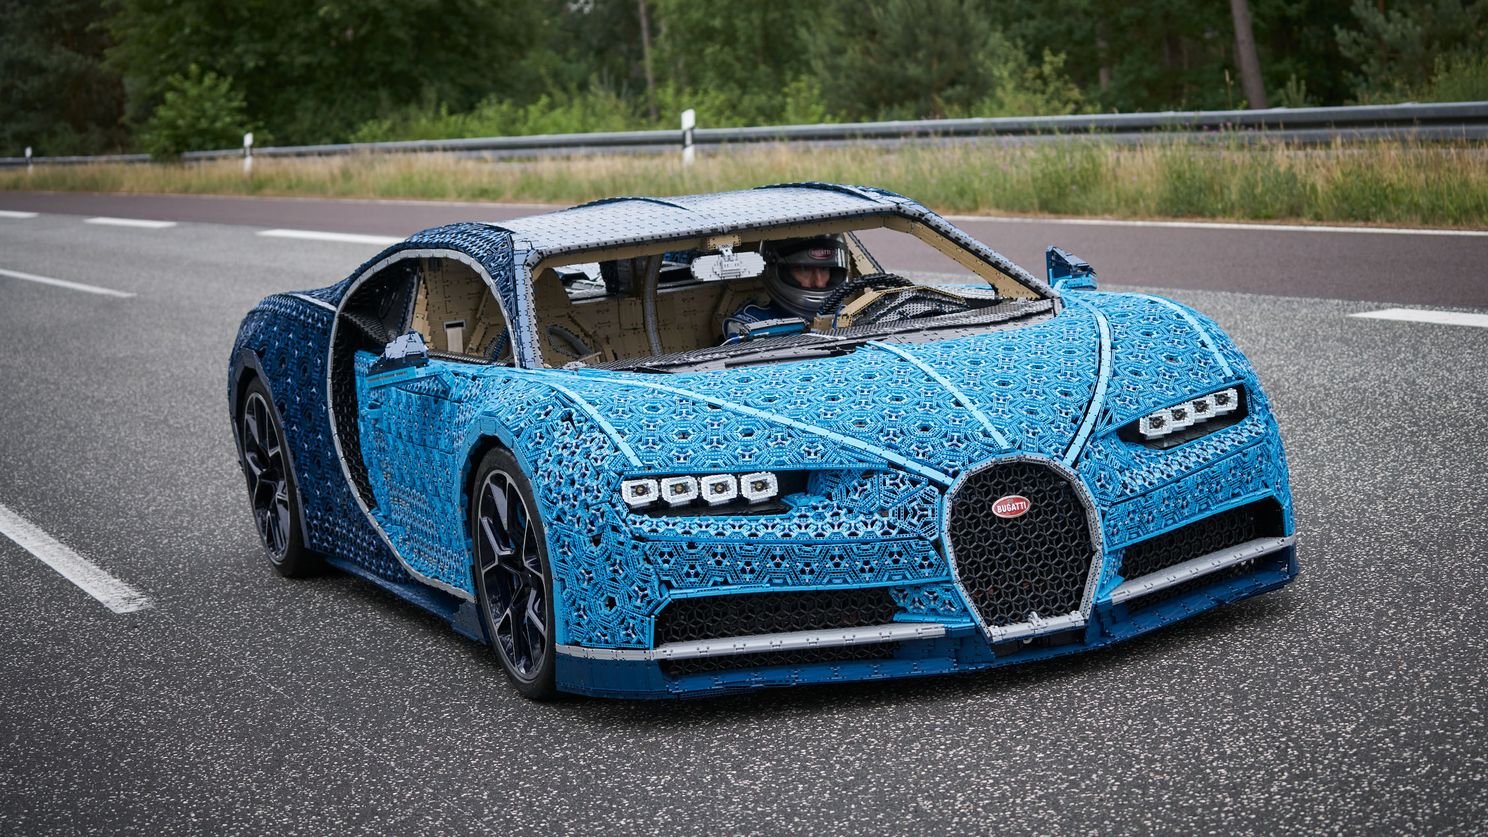 This driveable Bugatti Chiron is made out of 1 million Lego blocks